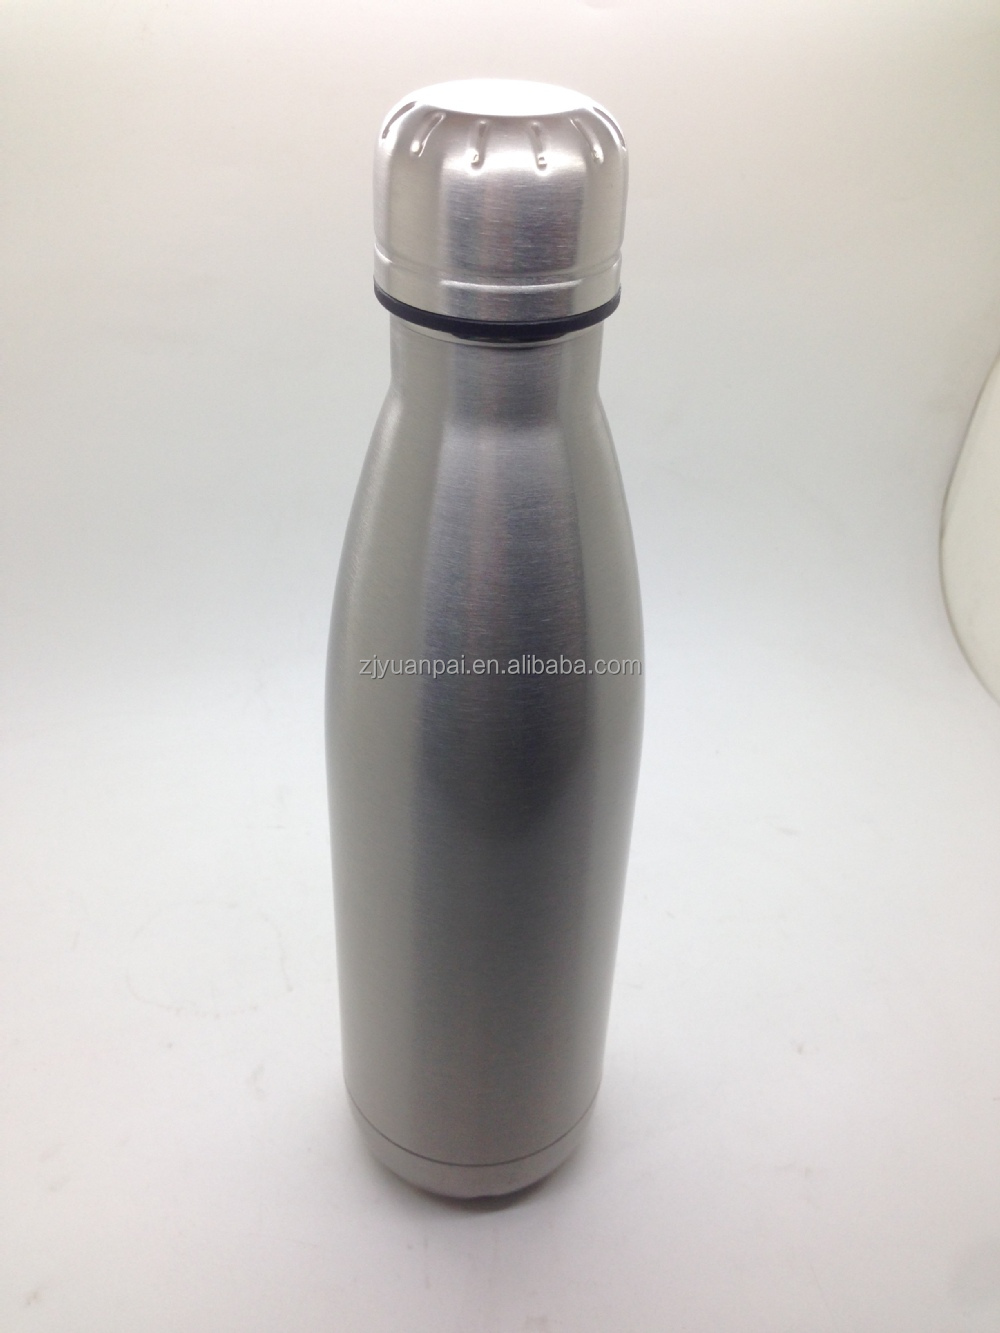 16oz joyshaker shaker bottle double wall stainless steel free sample bottle joyshaker